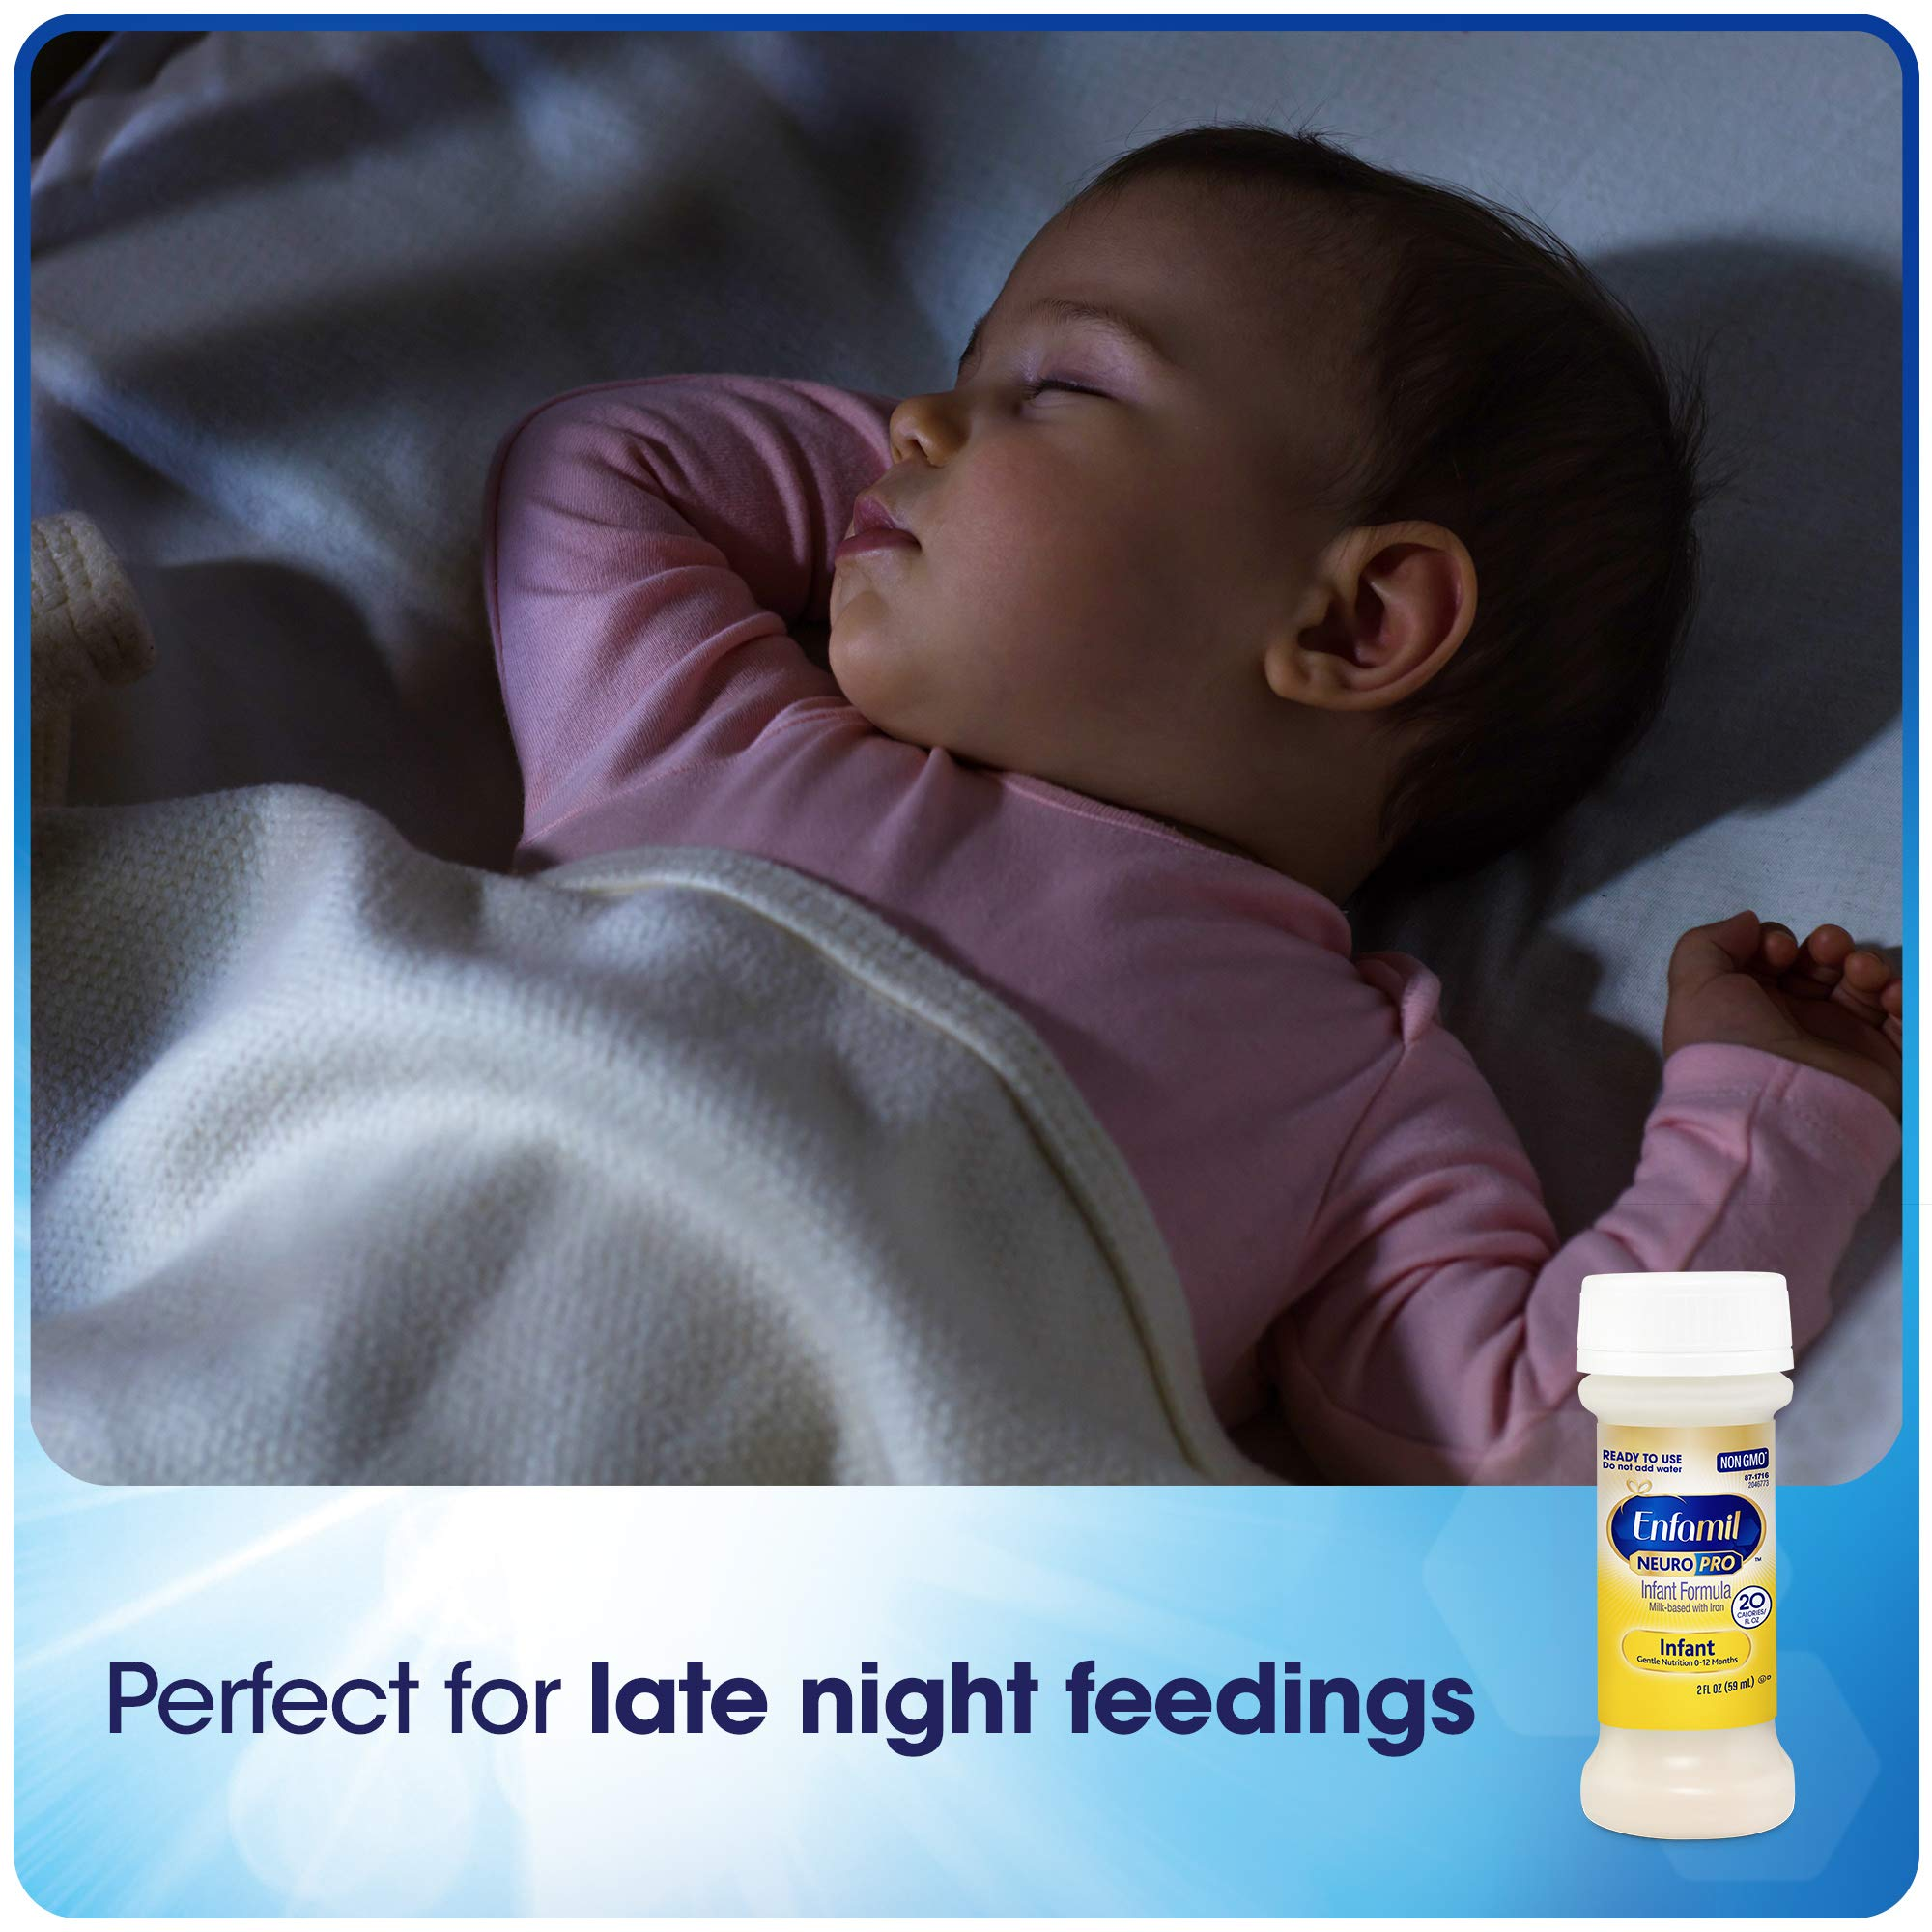 Enfamil NeuroPro Infant Formula - Brain Building Nutrition Inspired by Breast Milk - Ready to Use Liquid, 8 fl oz (24 count) Packaging May Vary by Enfamil (Image #8)